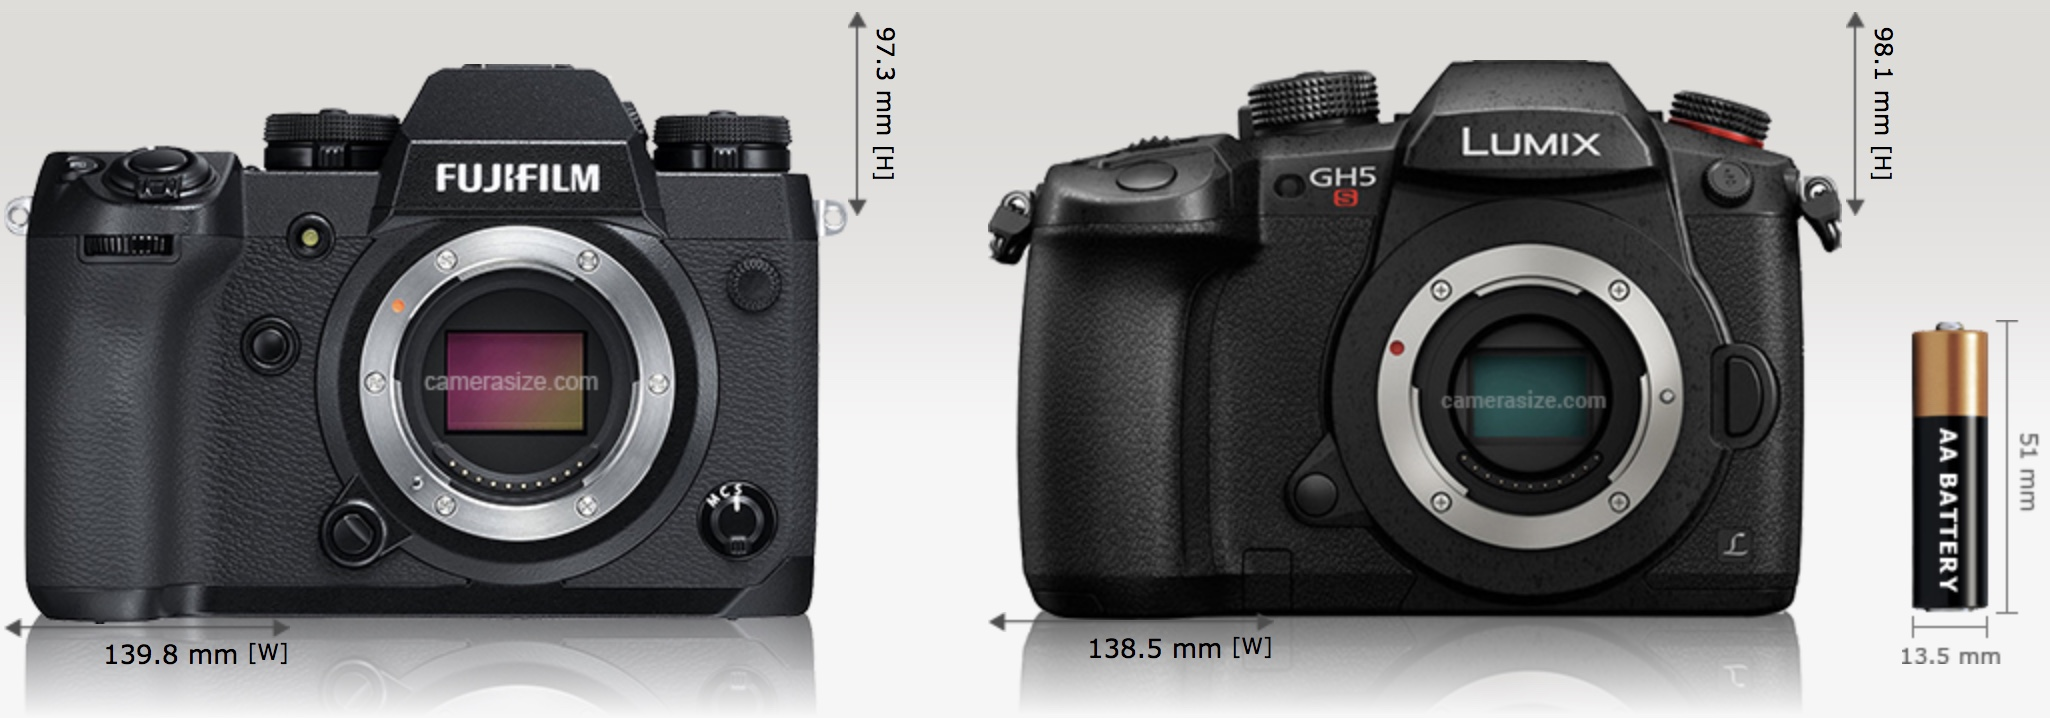 Fujifilm X H1 Released To Compete With Panasonic Gh5 Gh5s